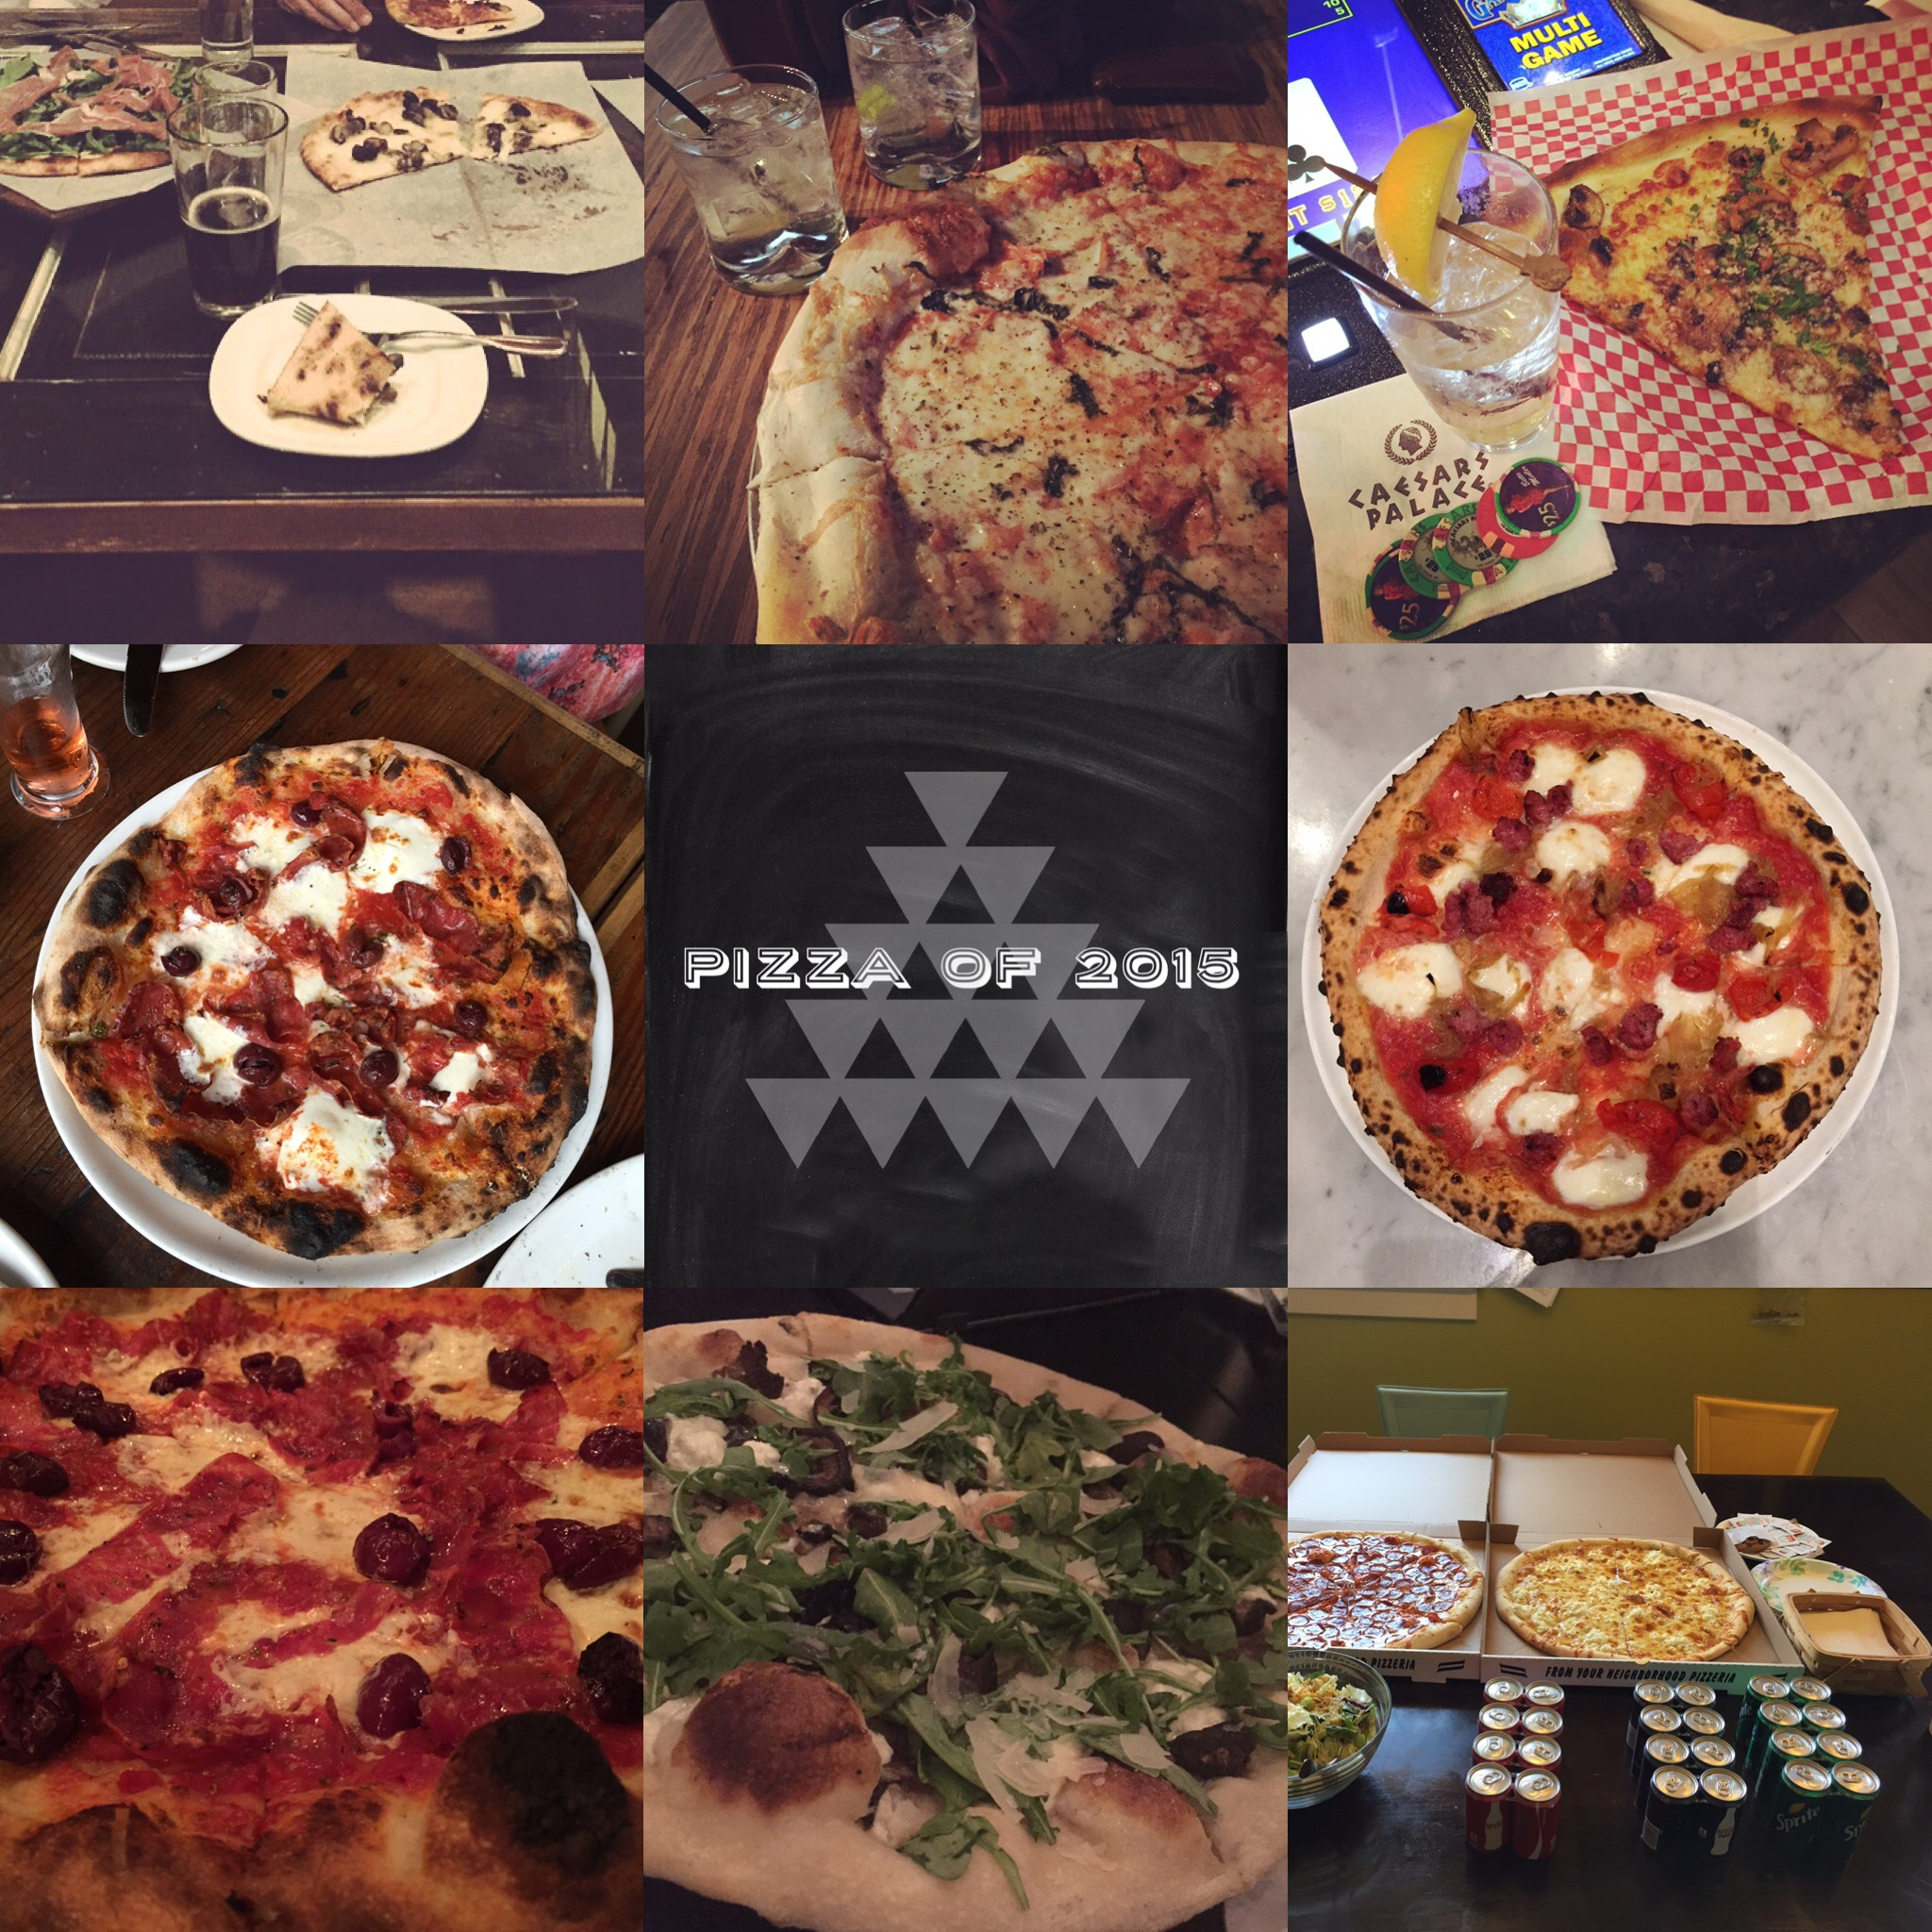 Pizza of 2015